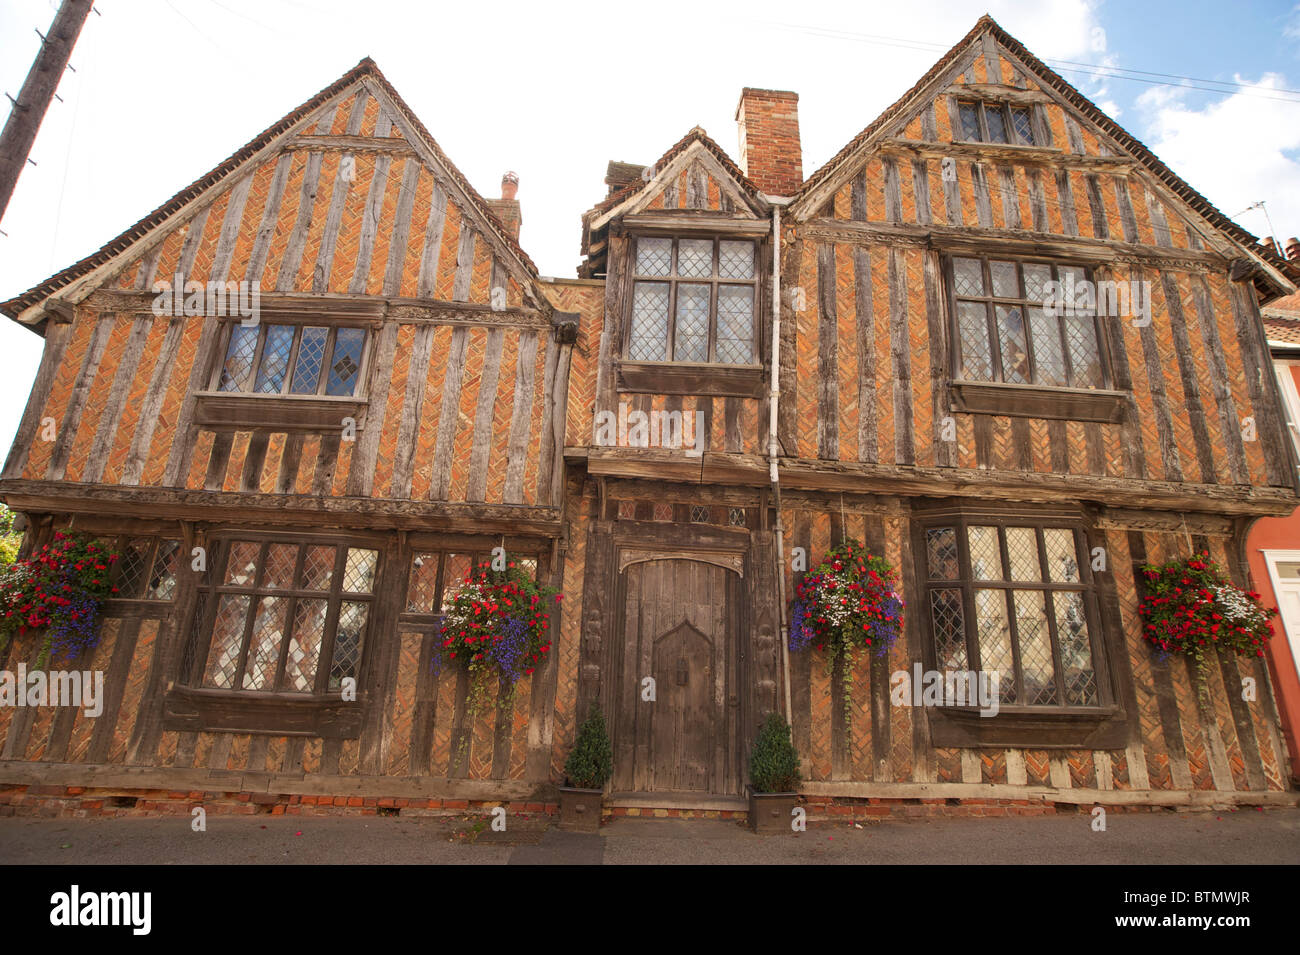 Building in the Historic Wool Village of Lavenham in Suffolk - Stock Image